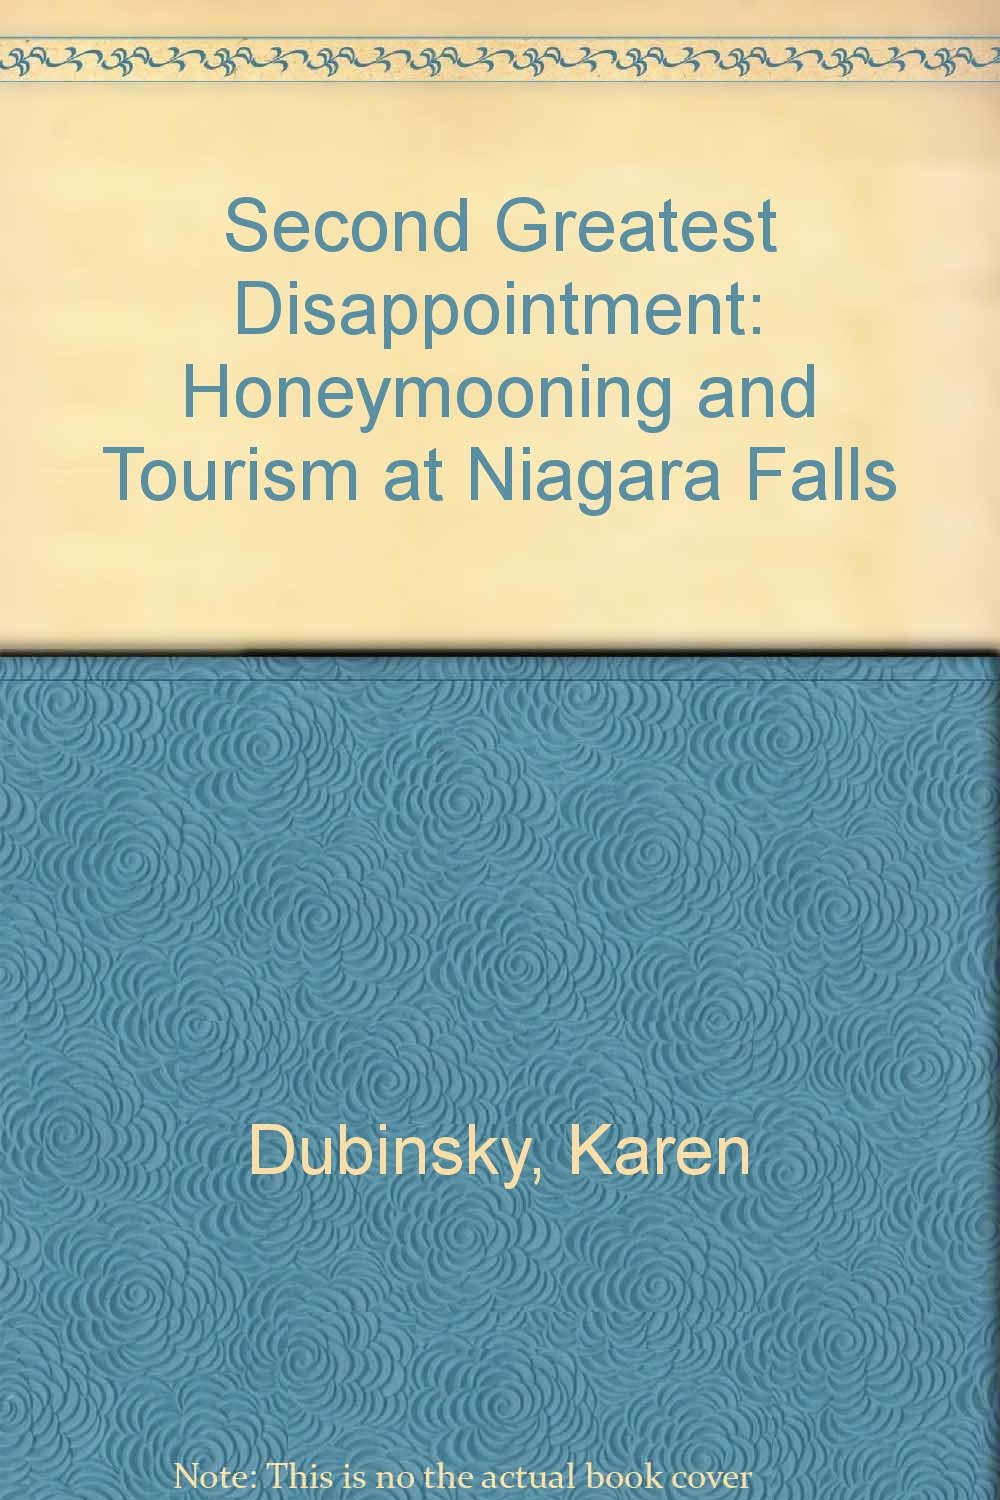 Second Greatest Disappointment: Honeymooning and Tourism at Niagara Falls